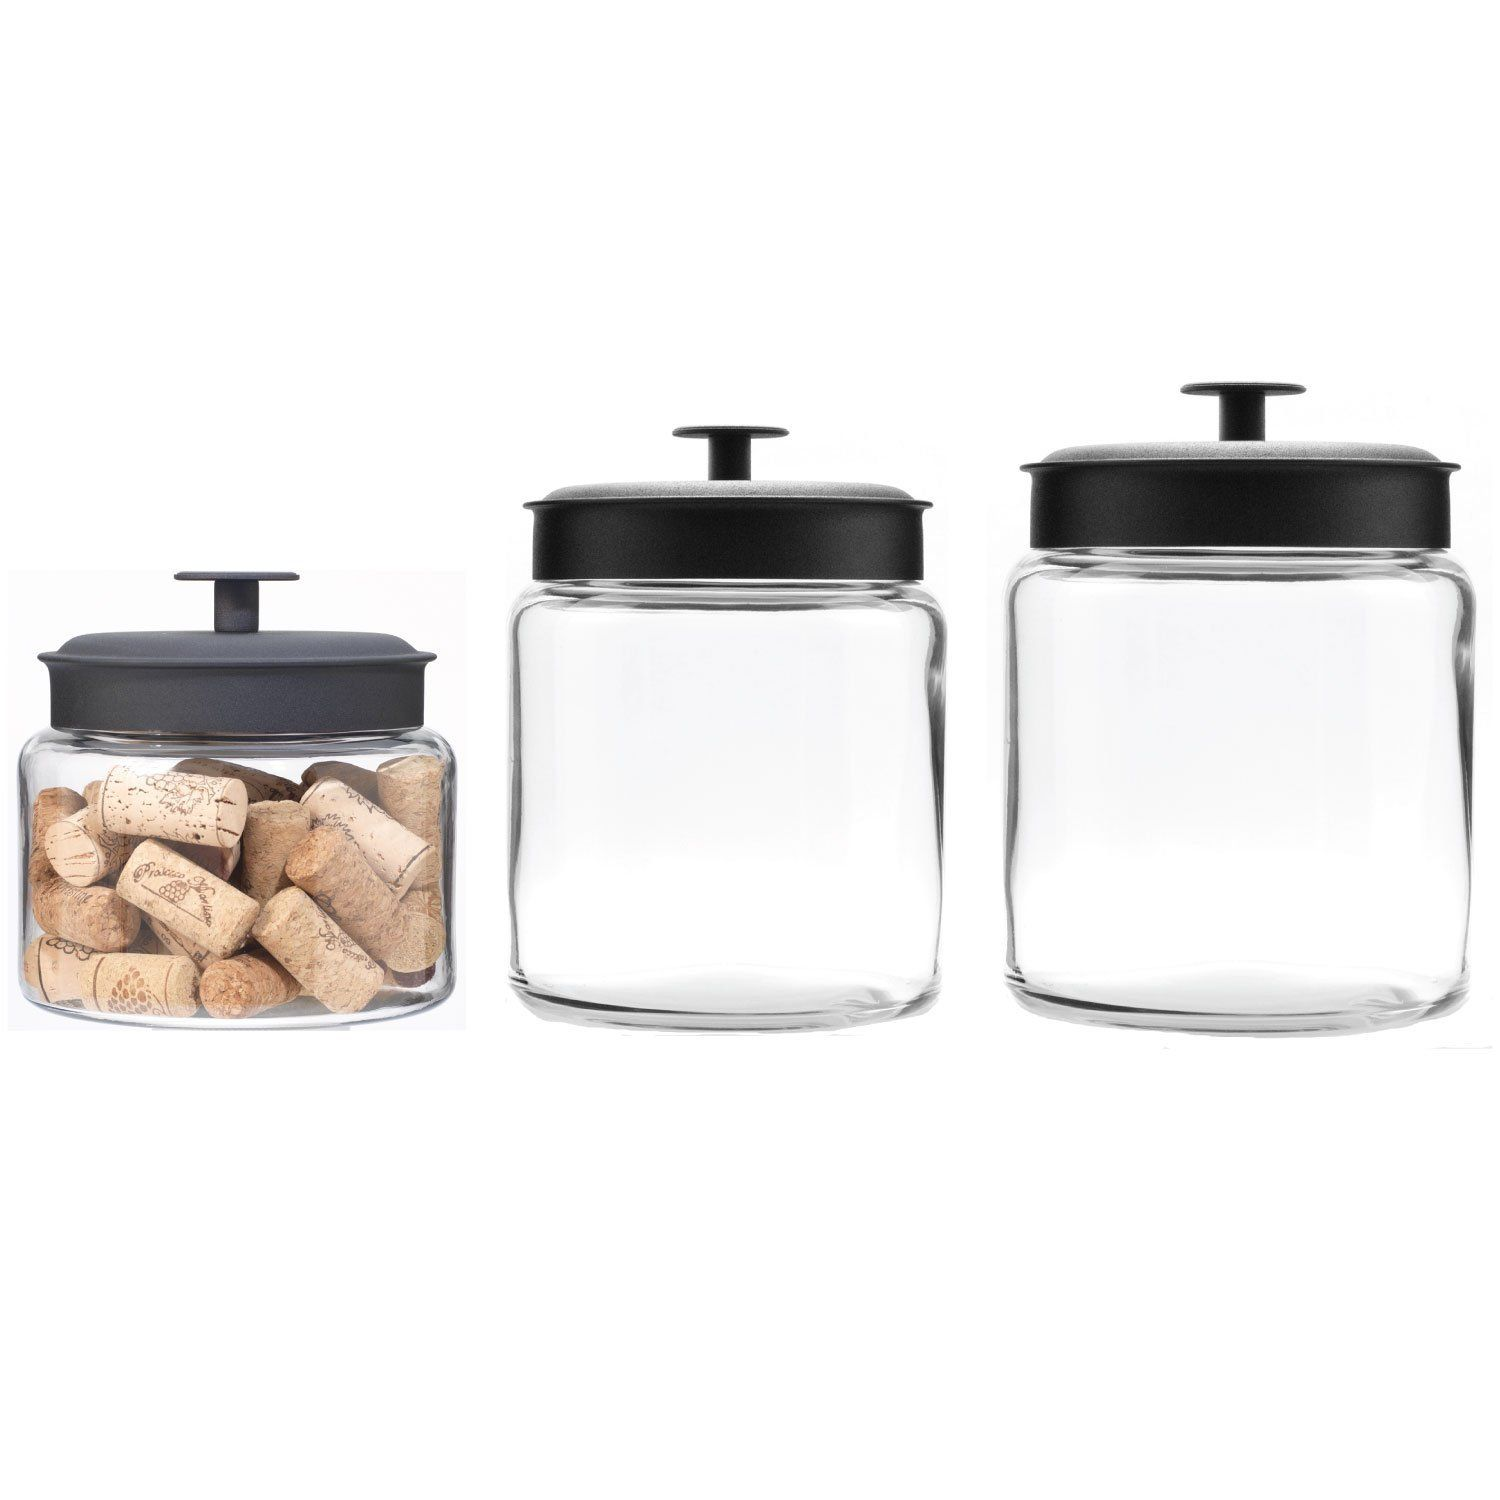 Airtight Cookie Jar Amazon Anchor Hocking Montana Glass Jars With Airtight Lids